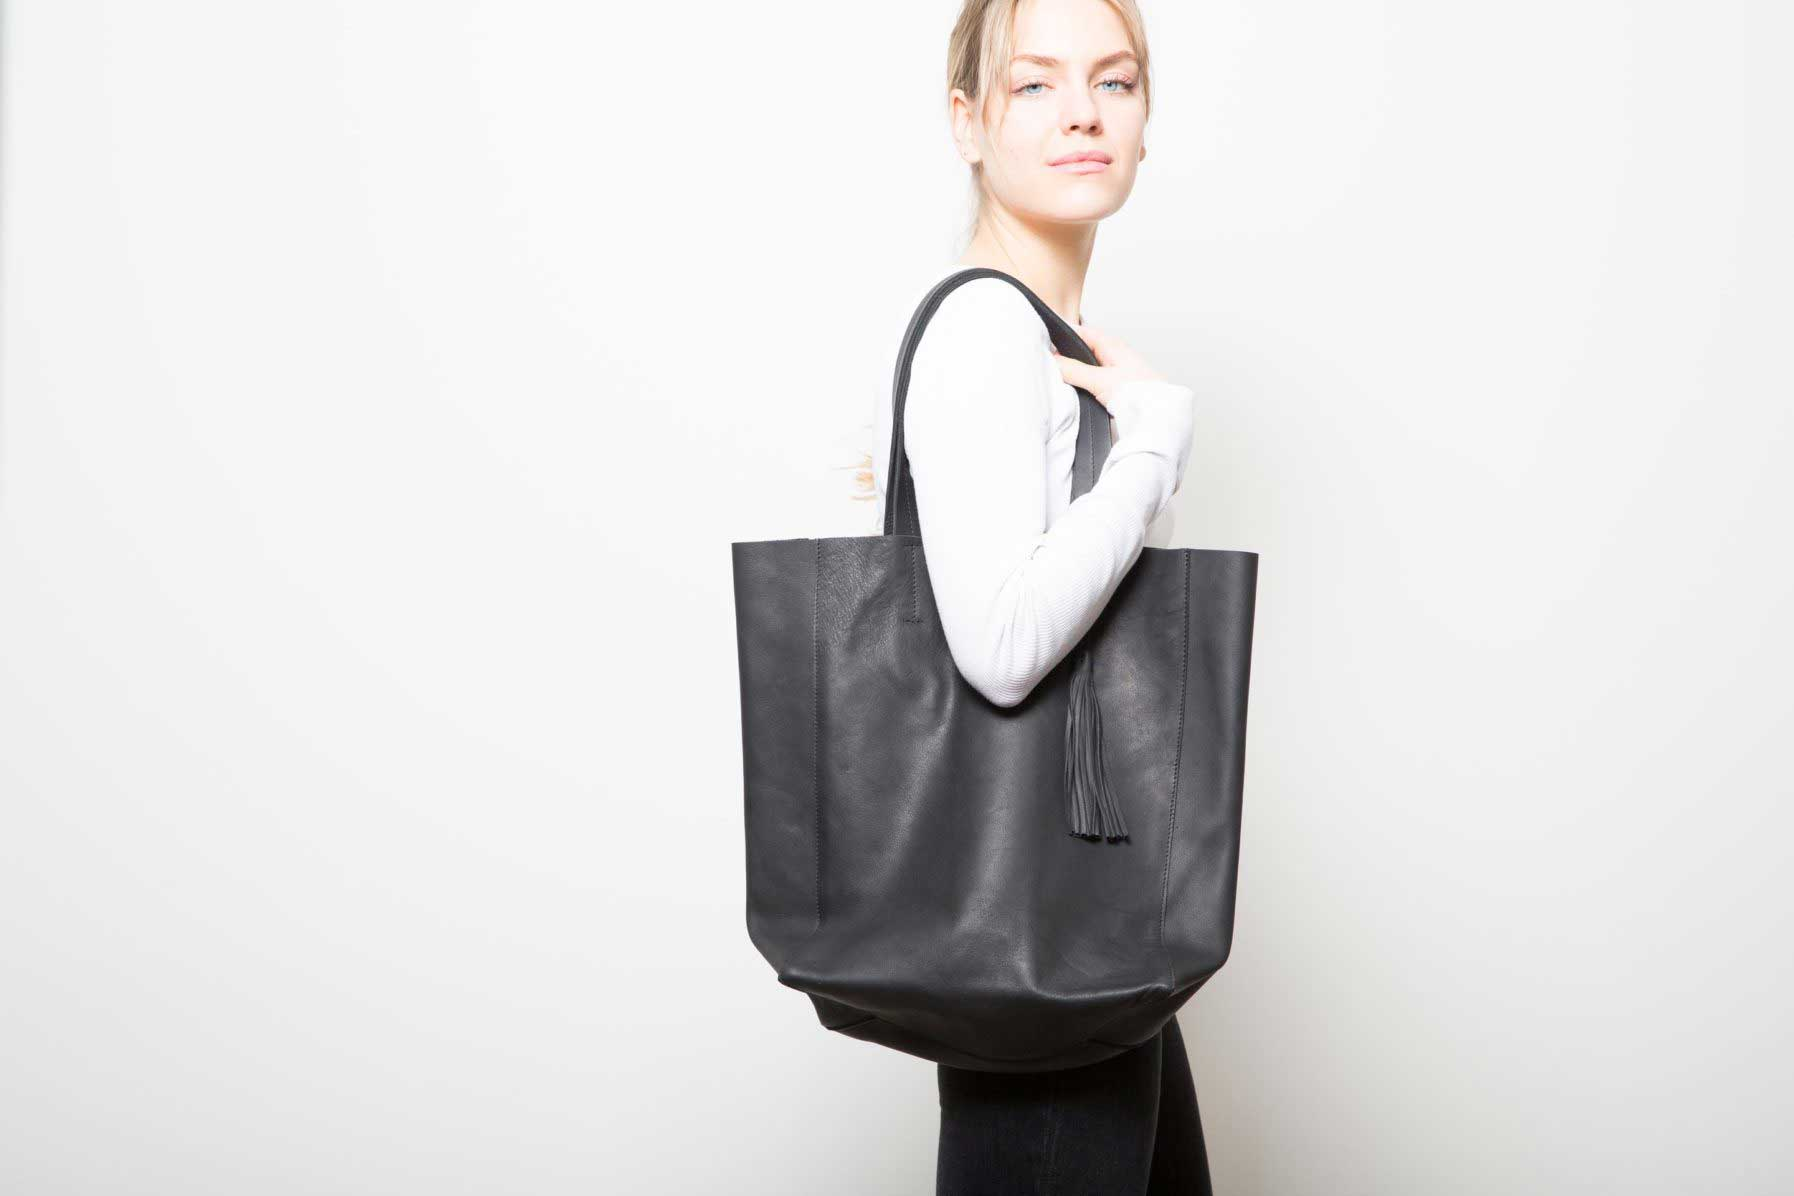 Grand sac Shopper Cuir Noir porté de profil - ordinari.shop